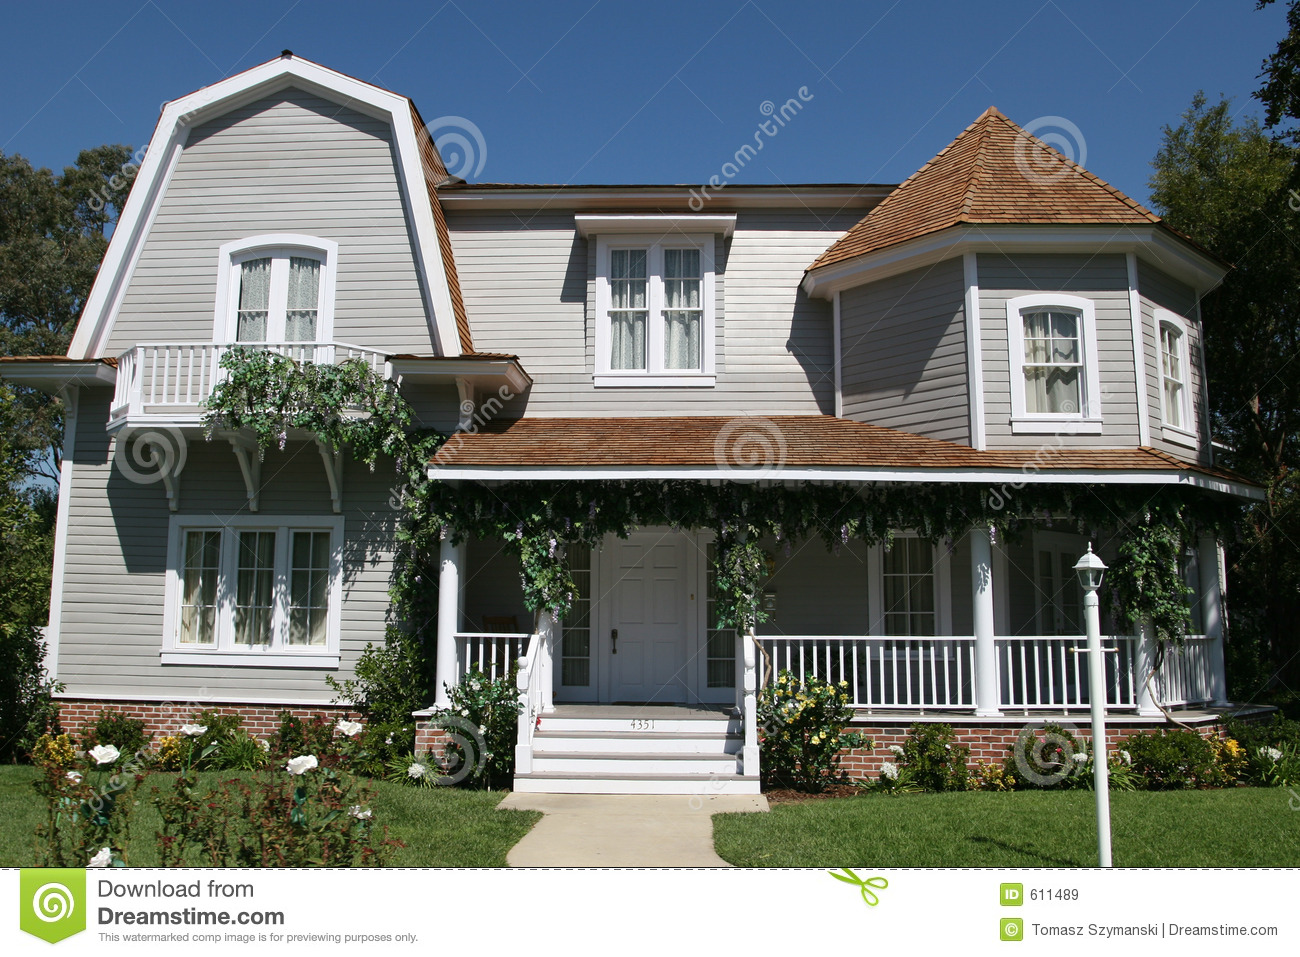 American style house royalty free stock images image 611489 for American style mansions